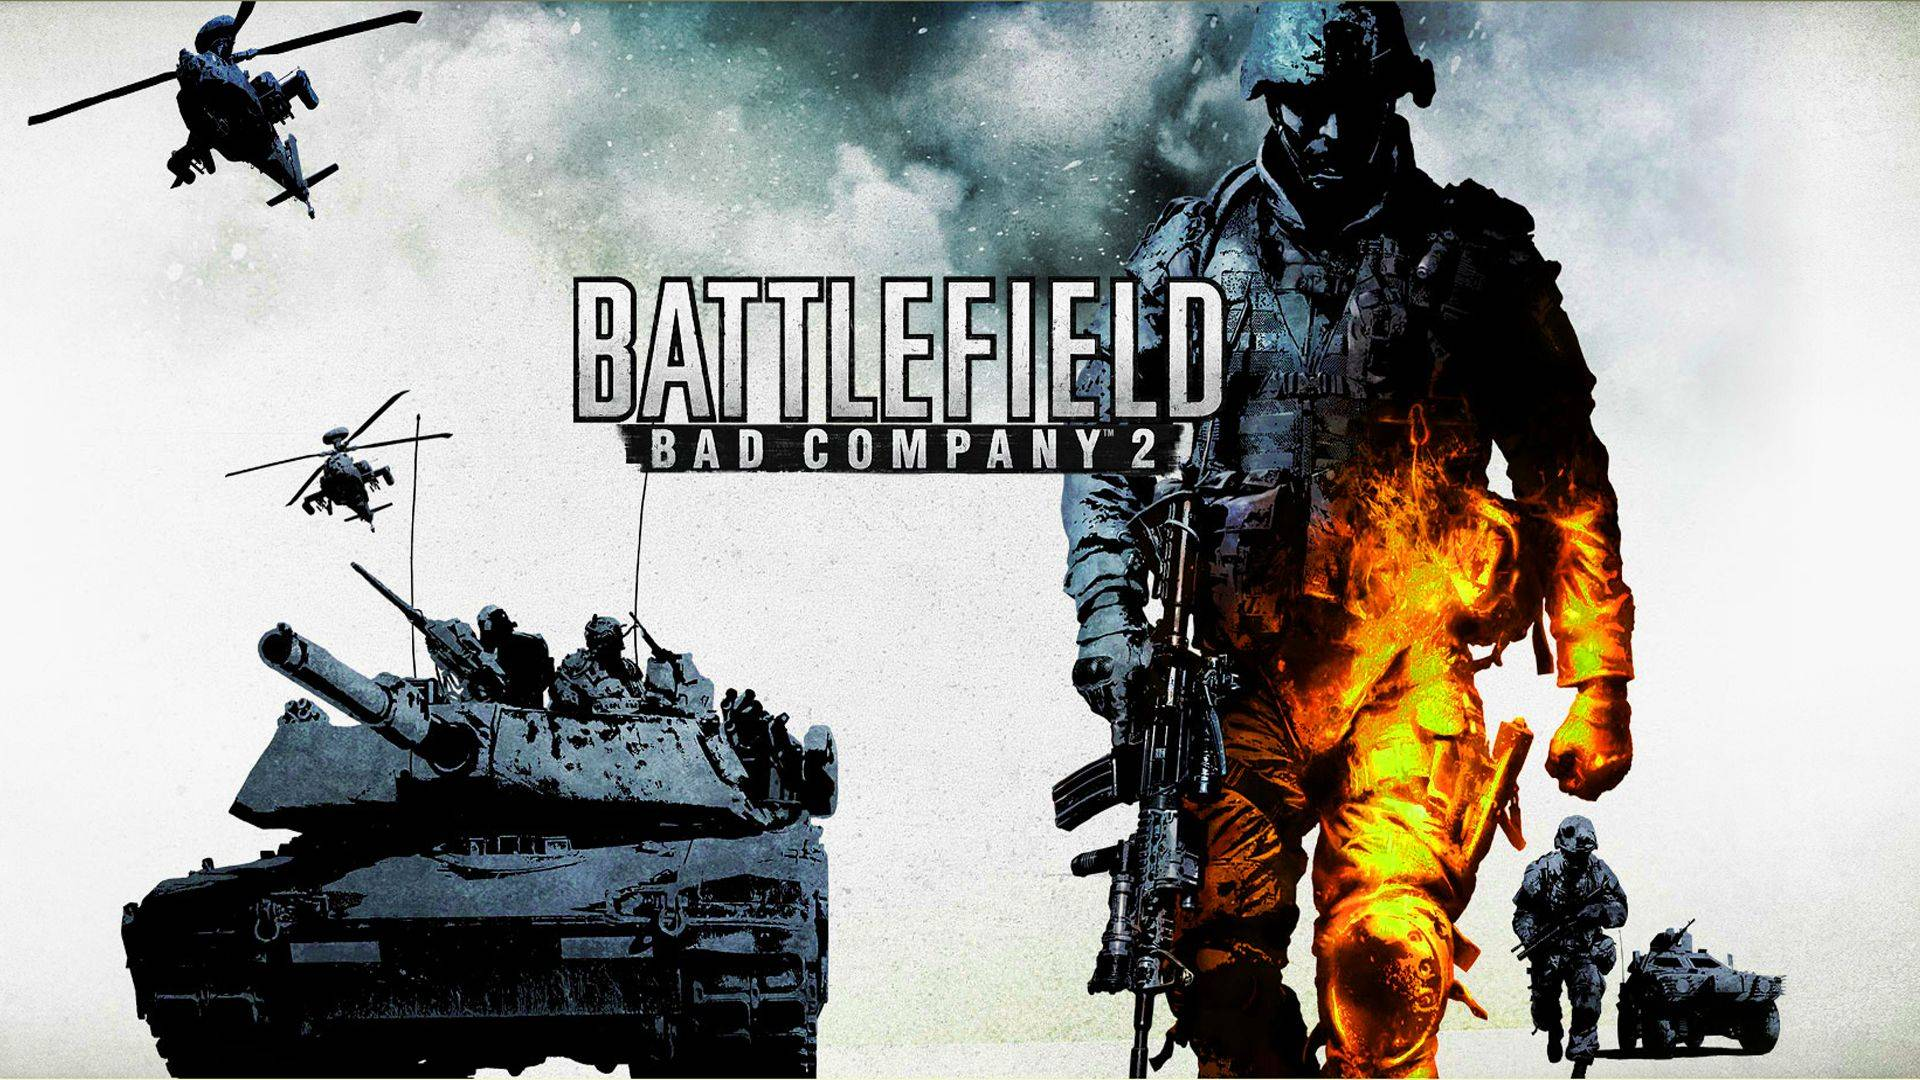 These are the Battlefield: Bad Company 2 system requirements